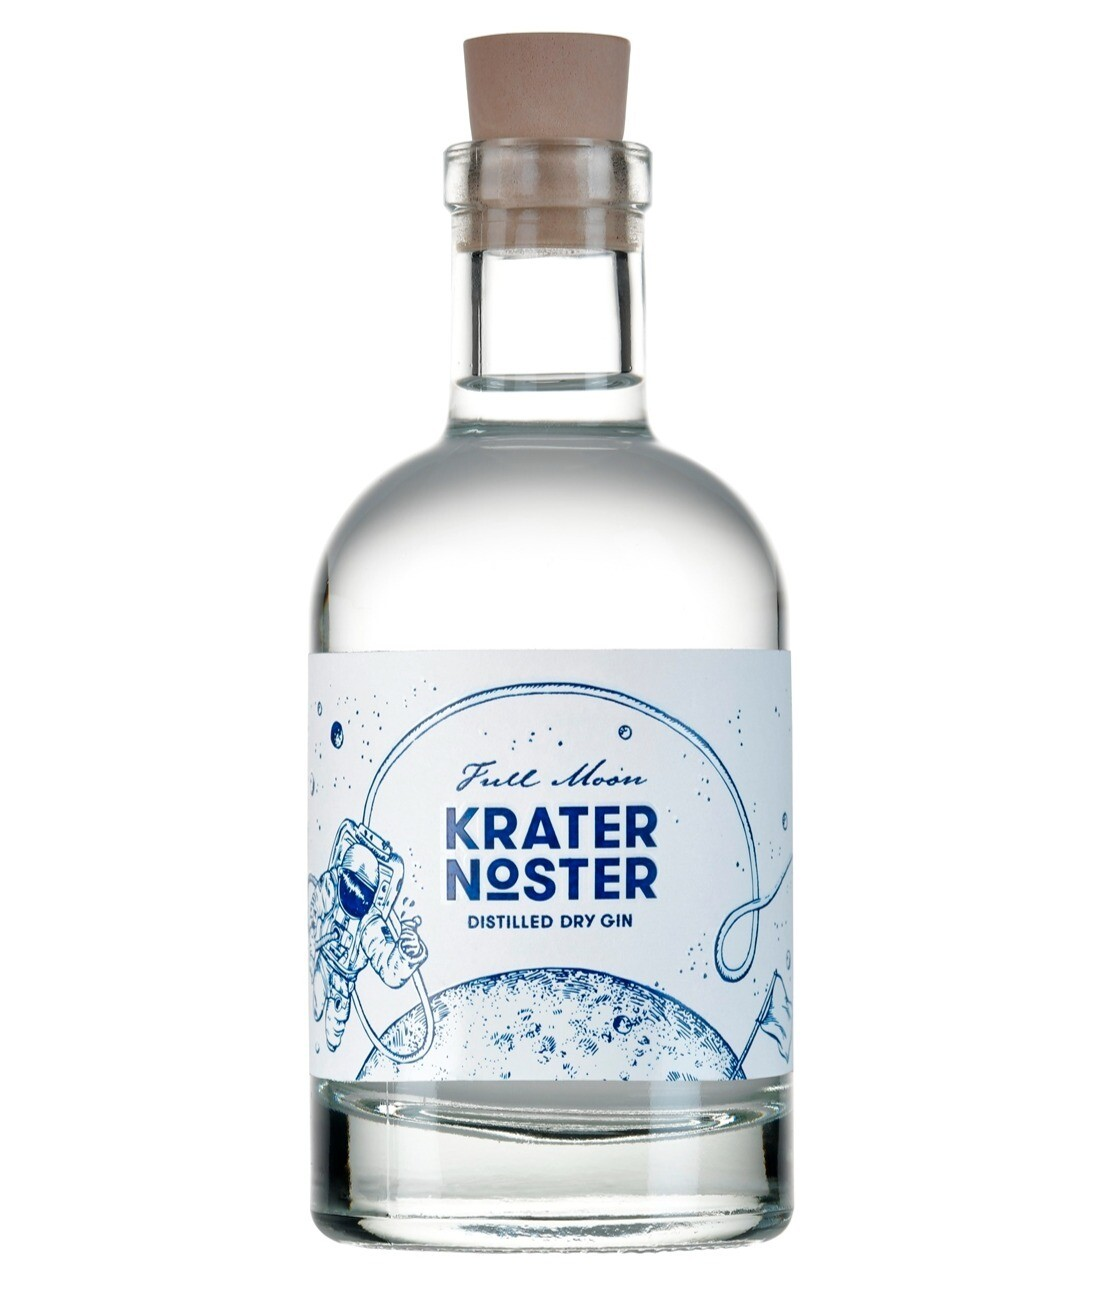 Krater Noster - Full Moon Distilled Dry Gin 0,2l -Probierflasche